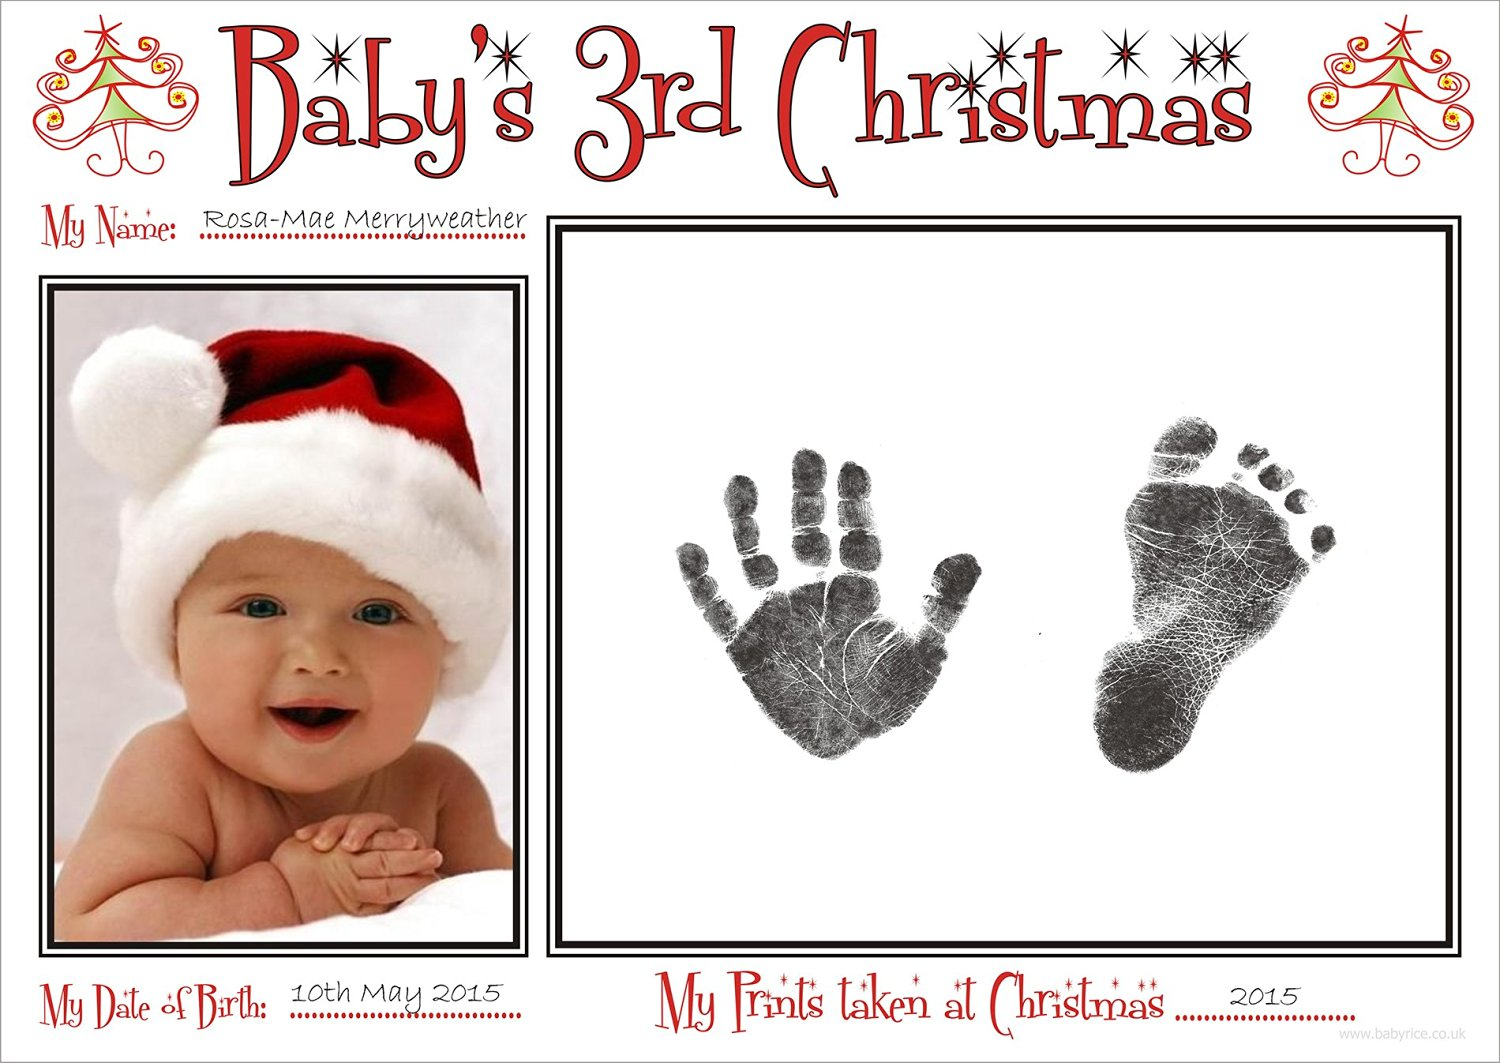 BabyRice New Baby's Third Christmas Handprint & Footprint Kit / Boy Girl Unisex Babys Prints on 3rd Xmas